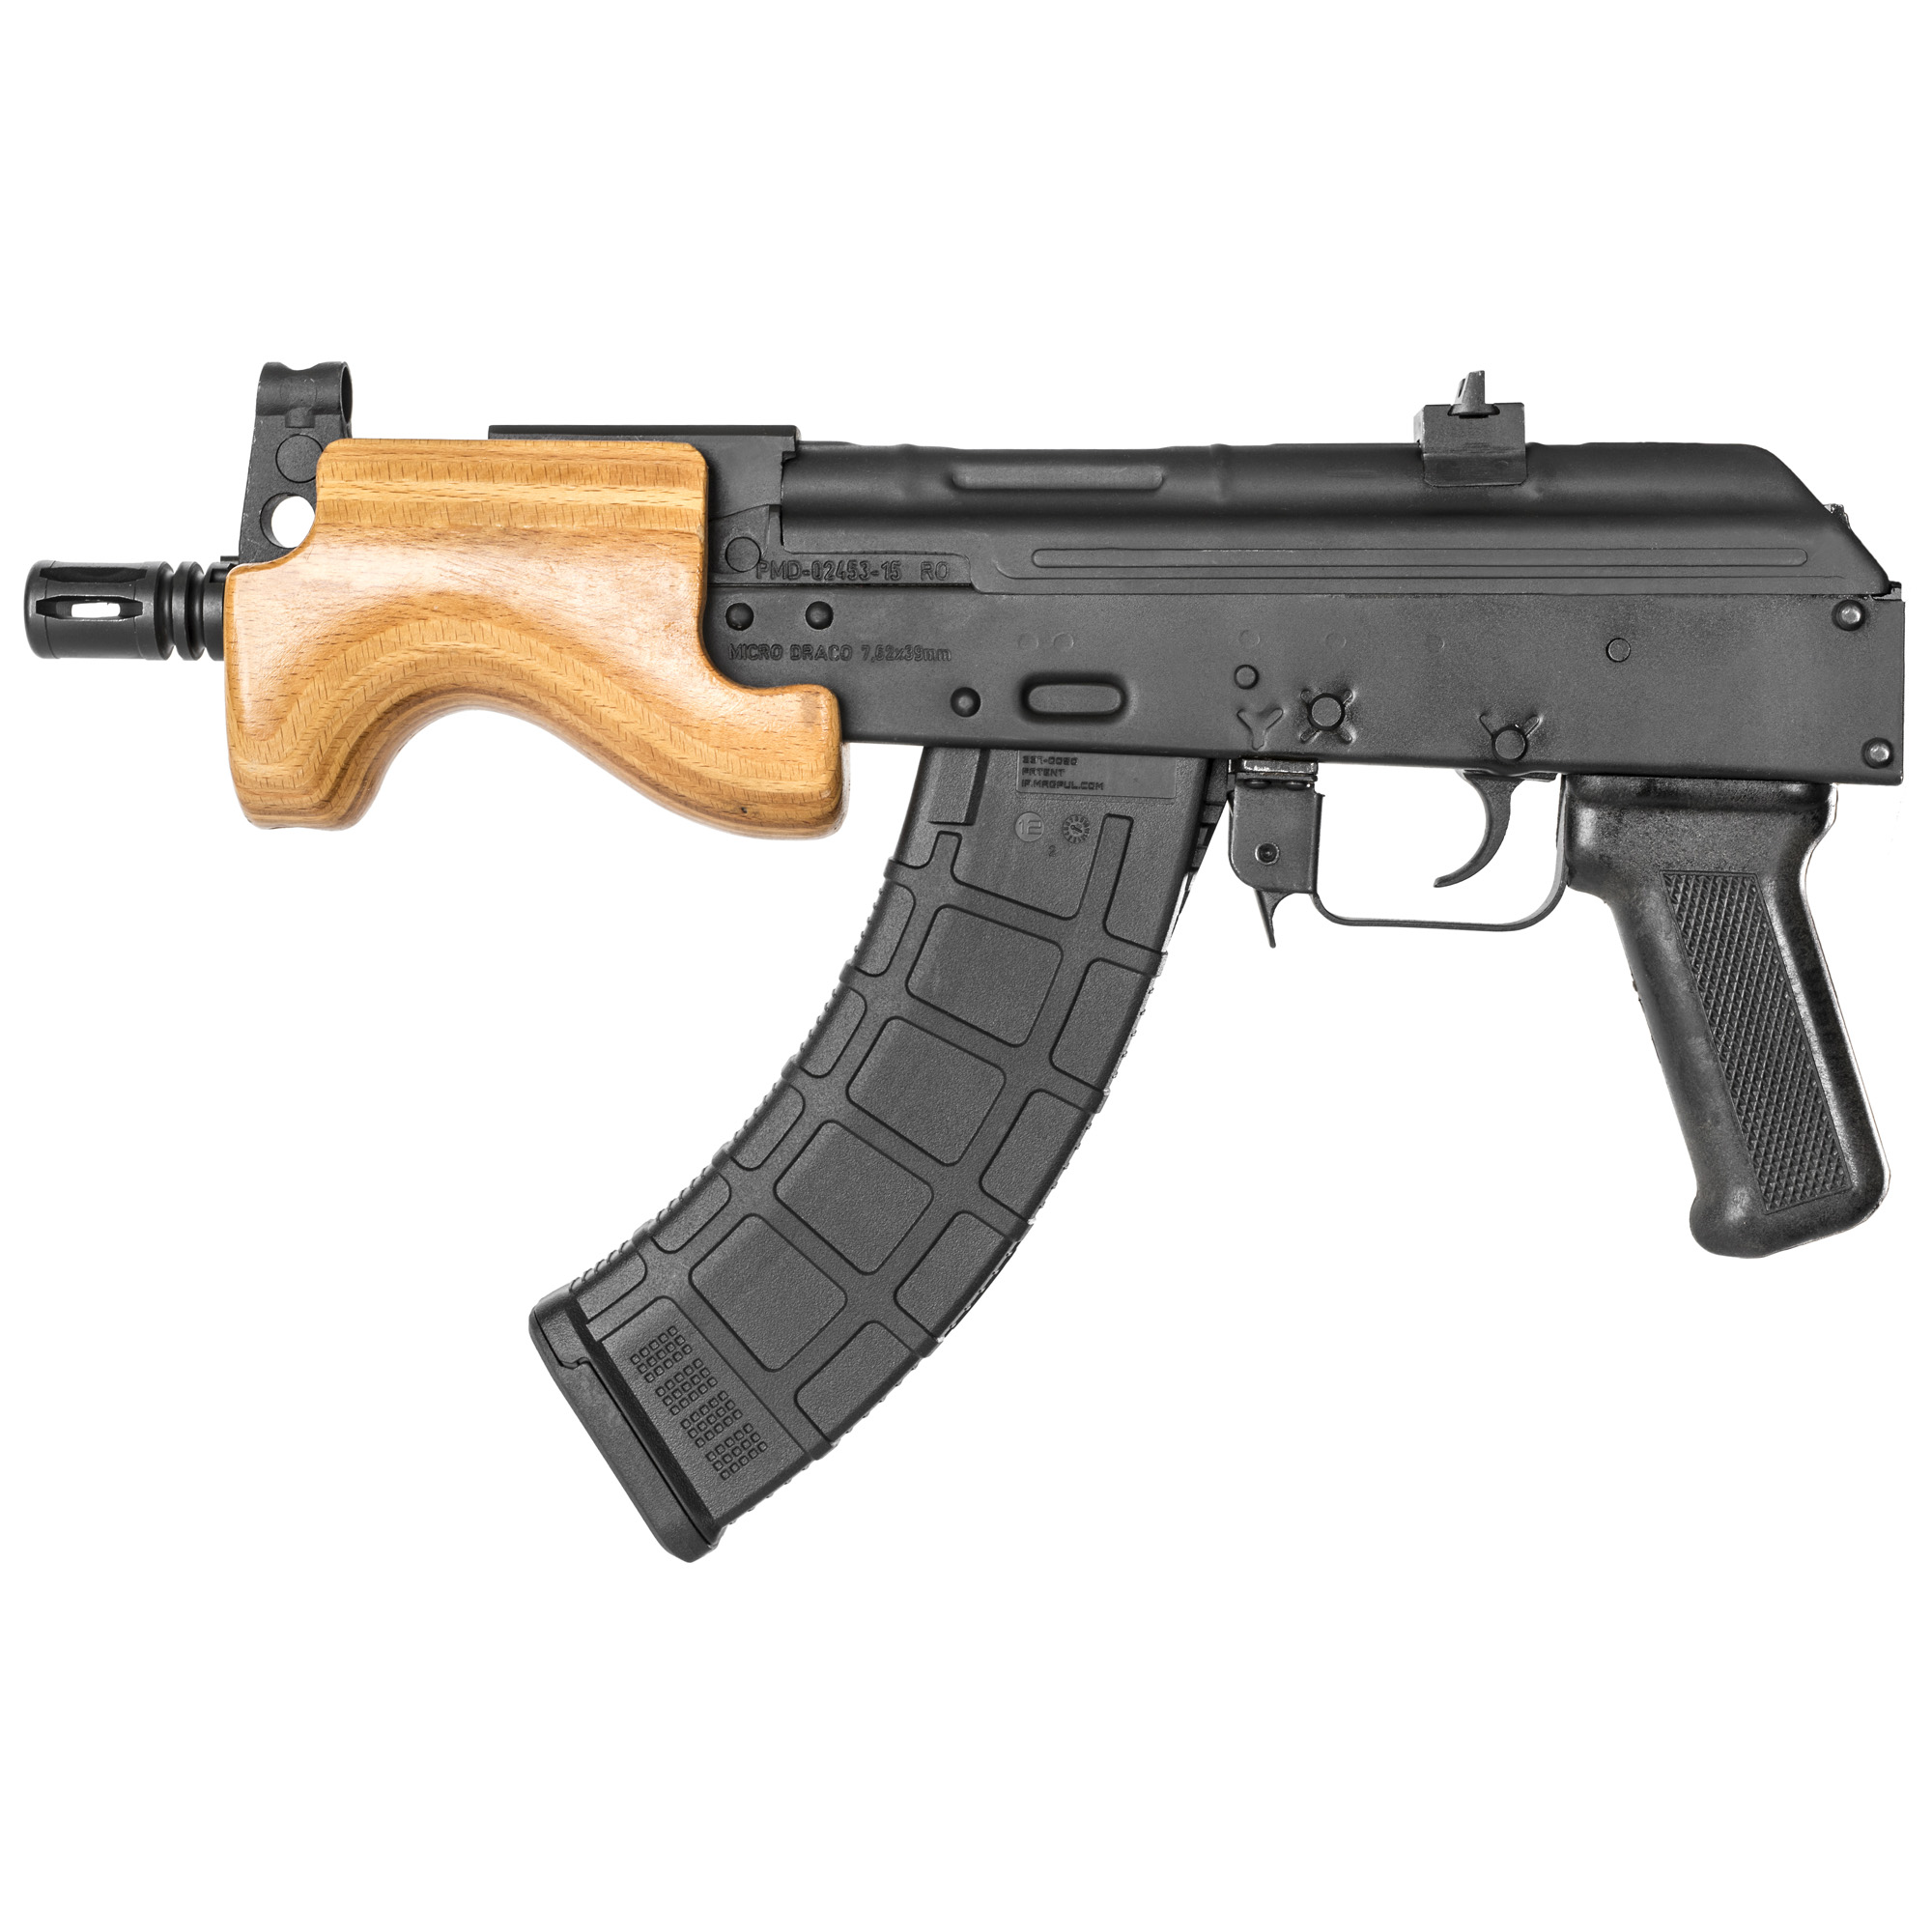 """The Century Arms Micro Draco features a stamped receiver"""" 14x1 left hand threaded barrel and it accepts all standard AK magazines."""